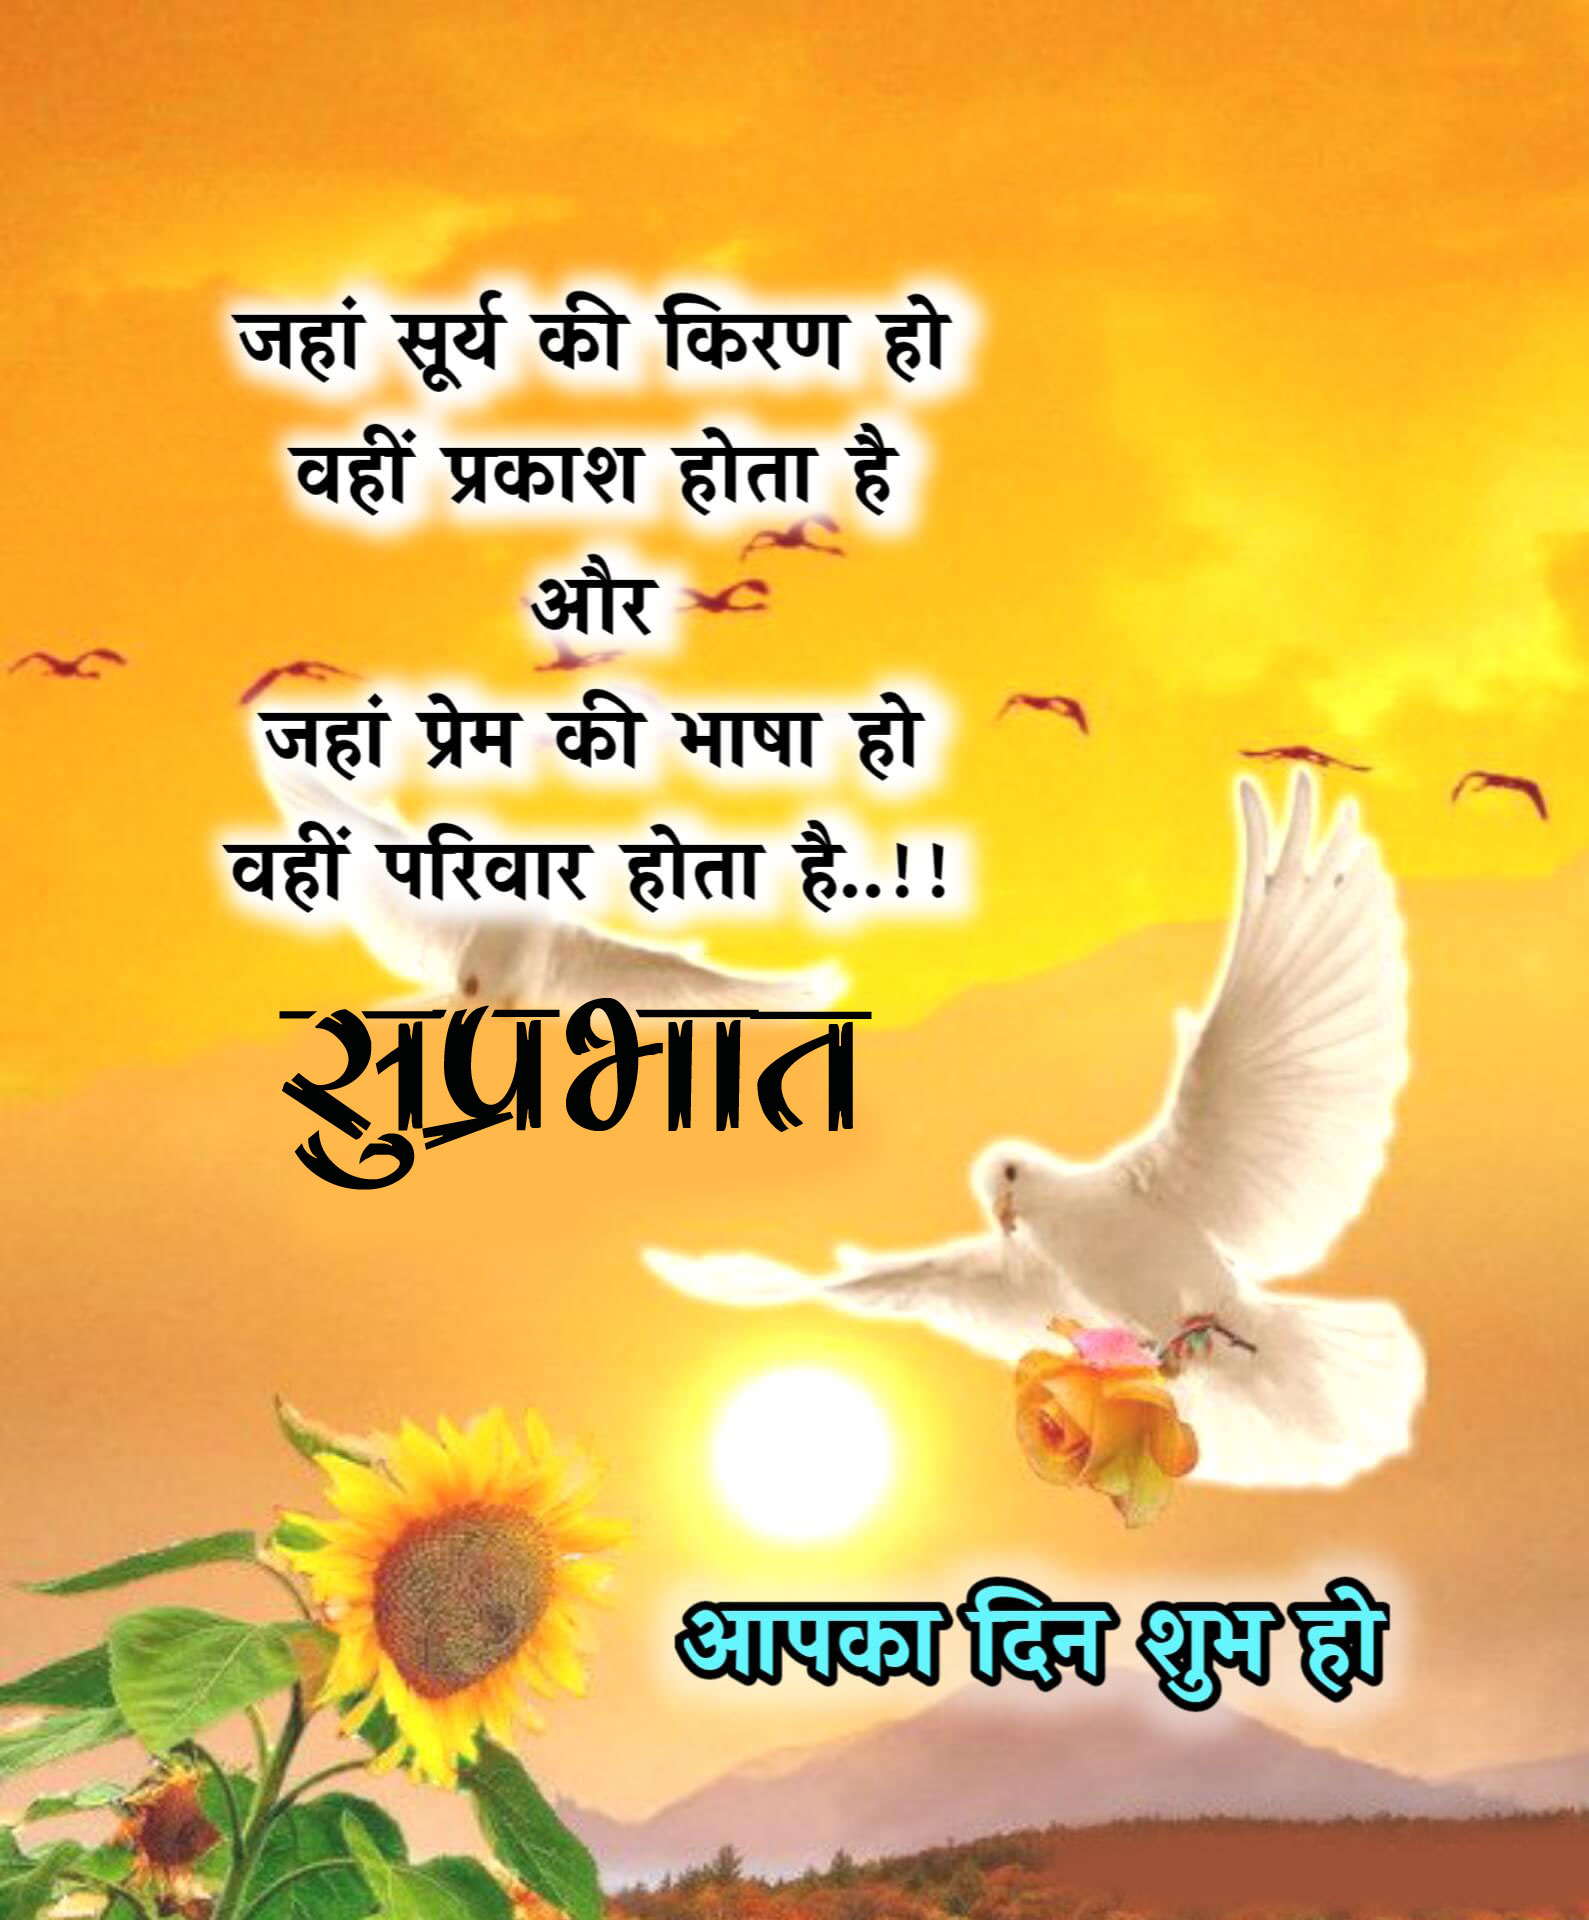 2021 Suprabhat Images